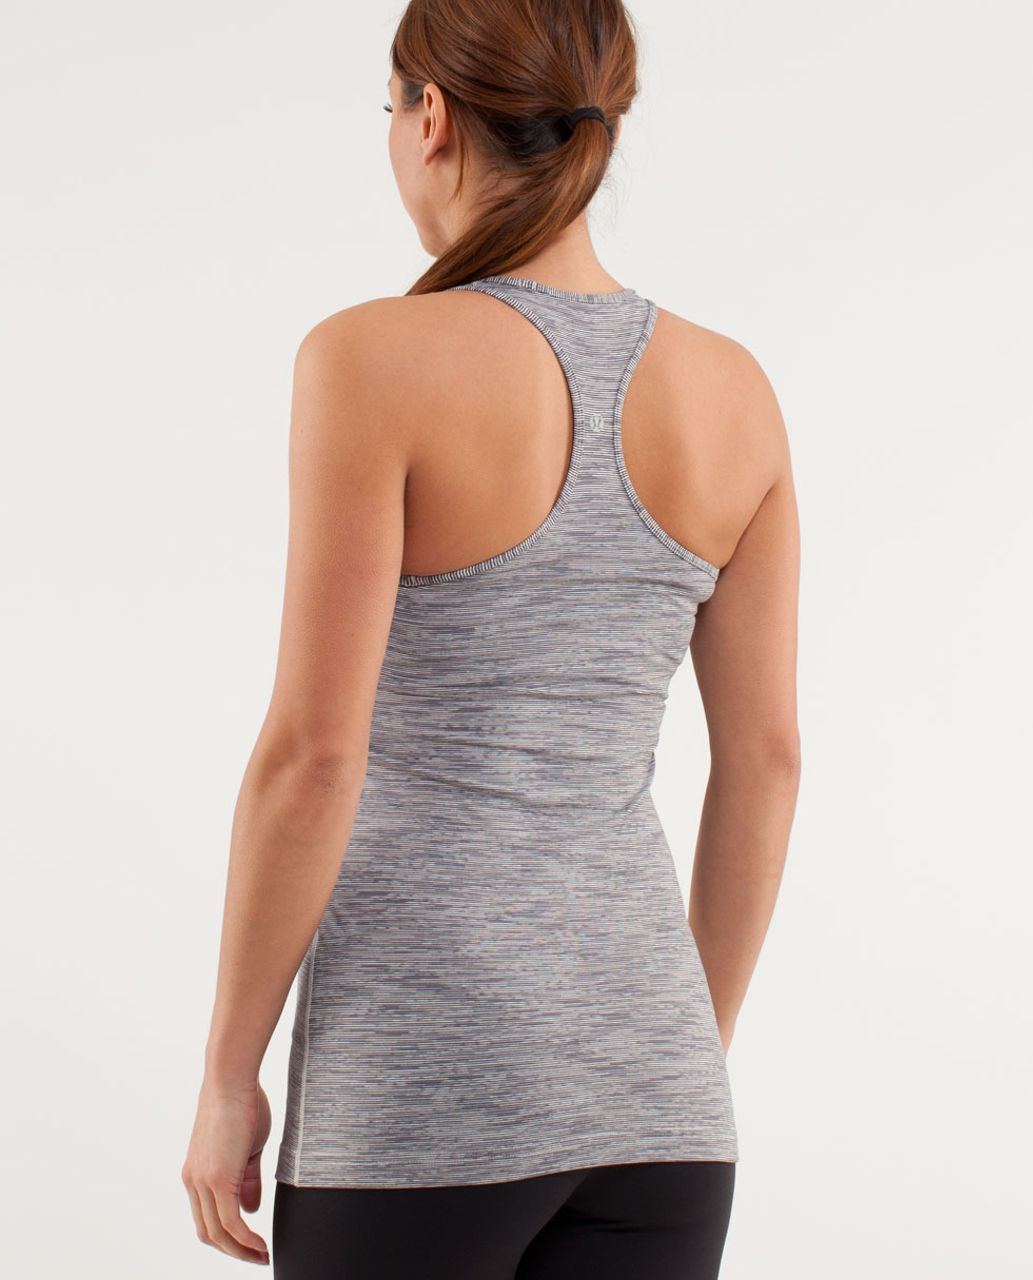 Lululemon Cool Racerback - Wee Are From Space Coal Fossil